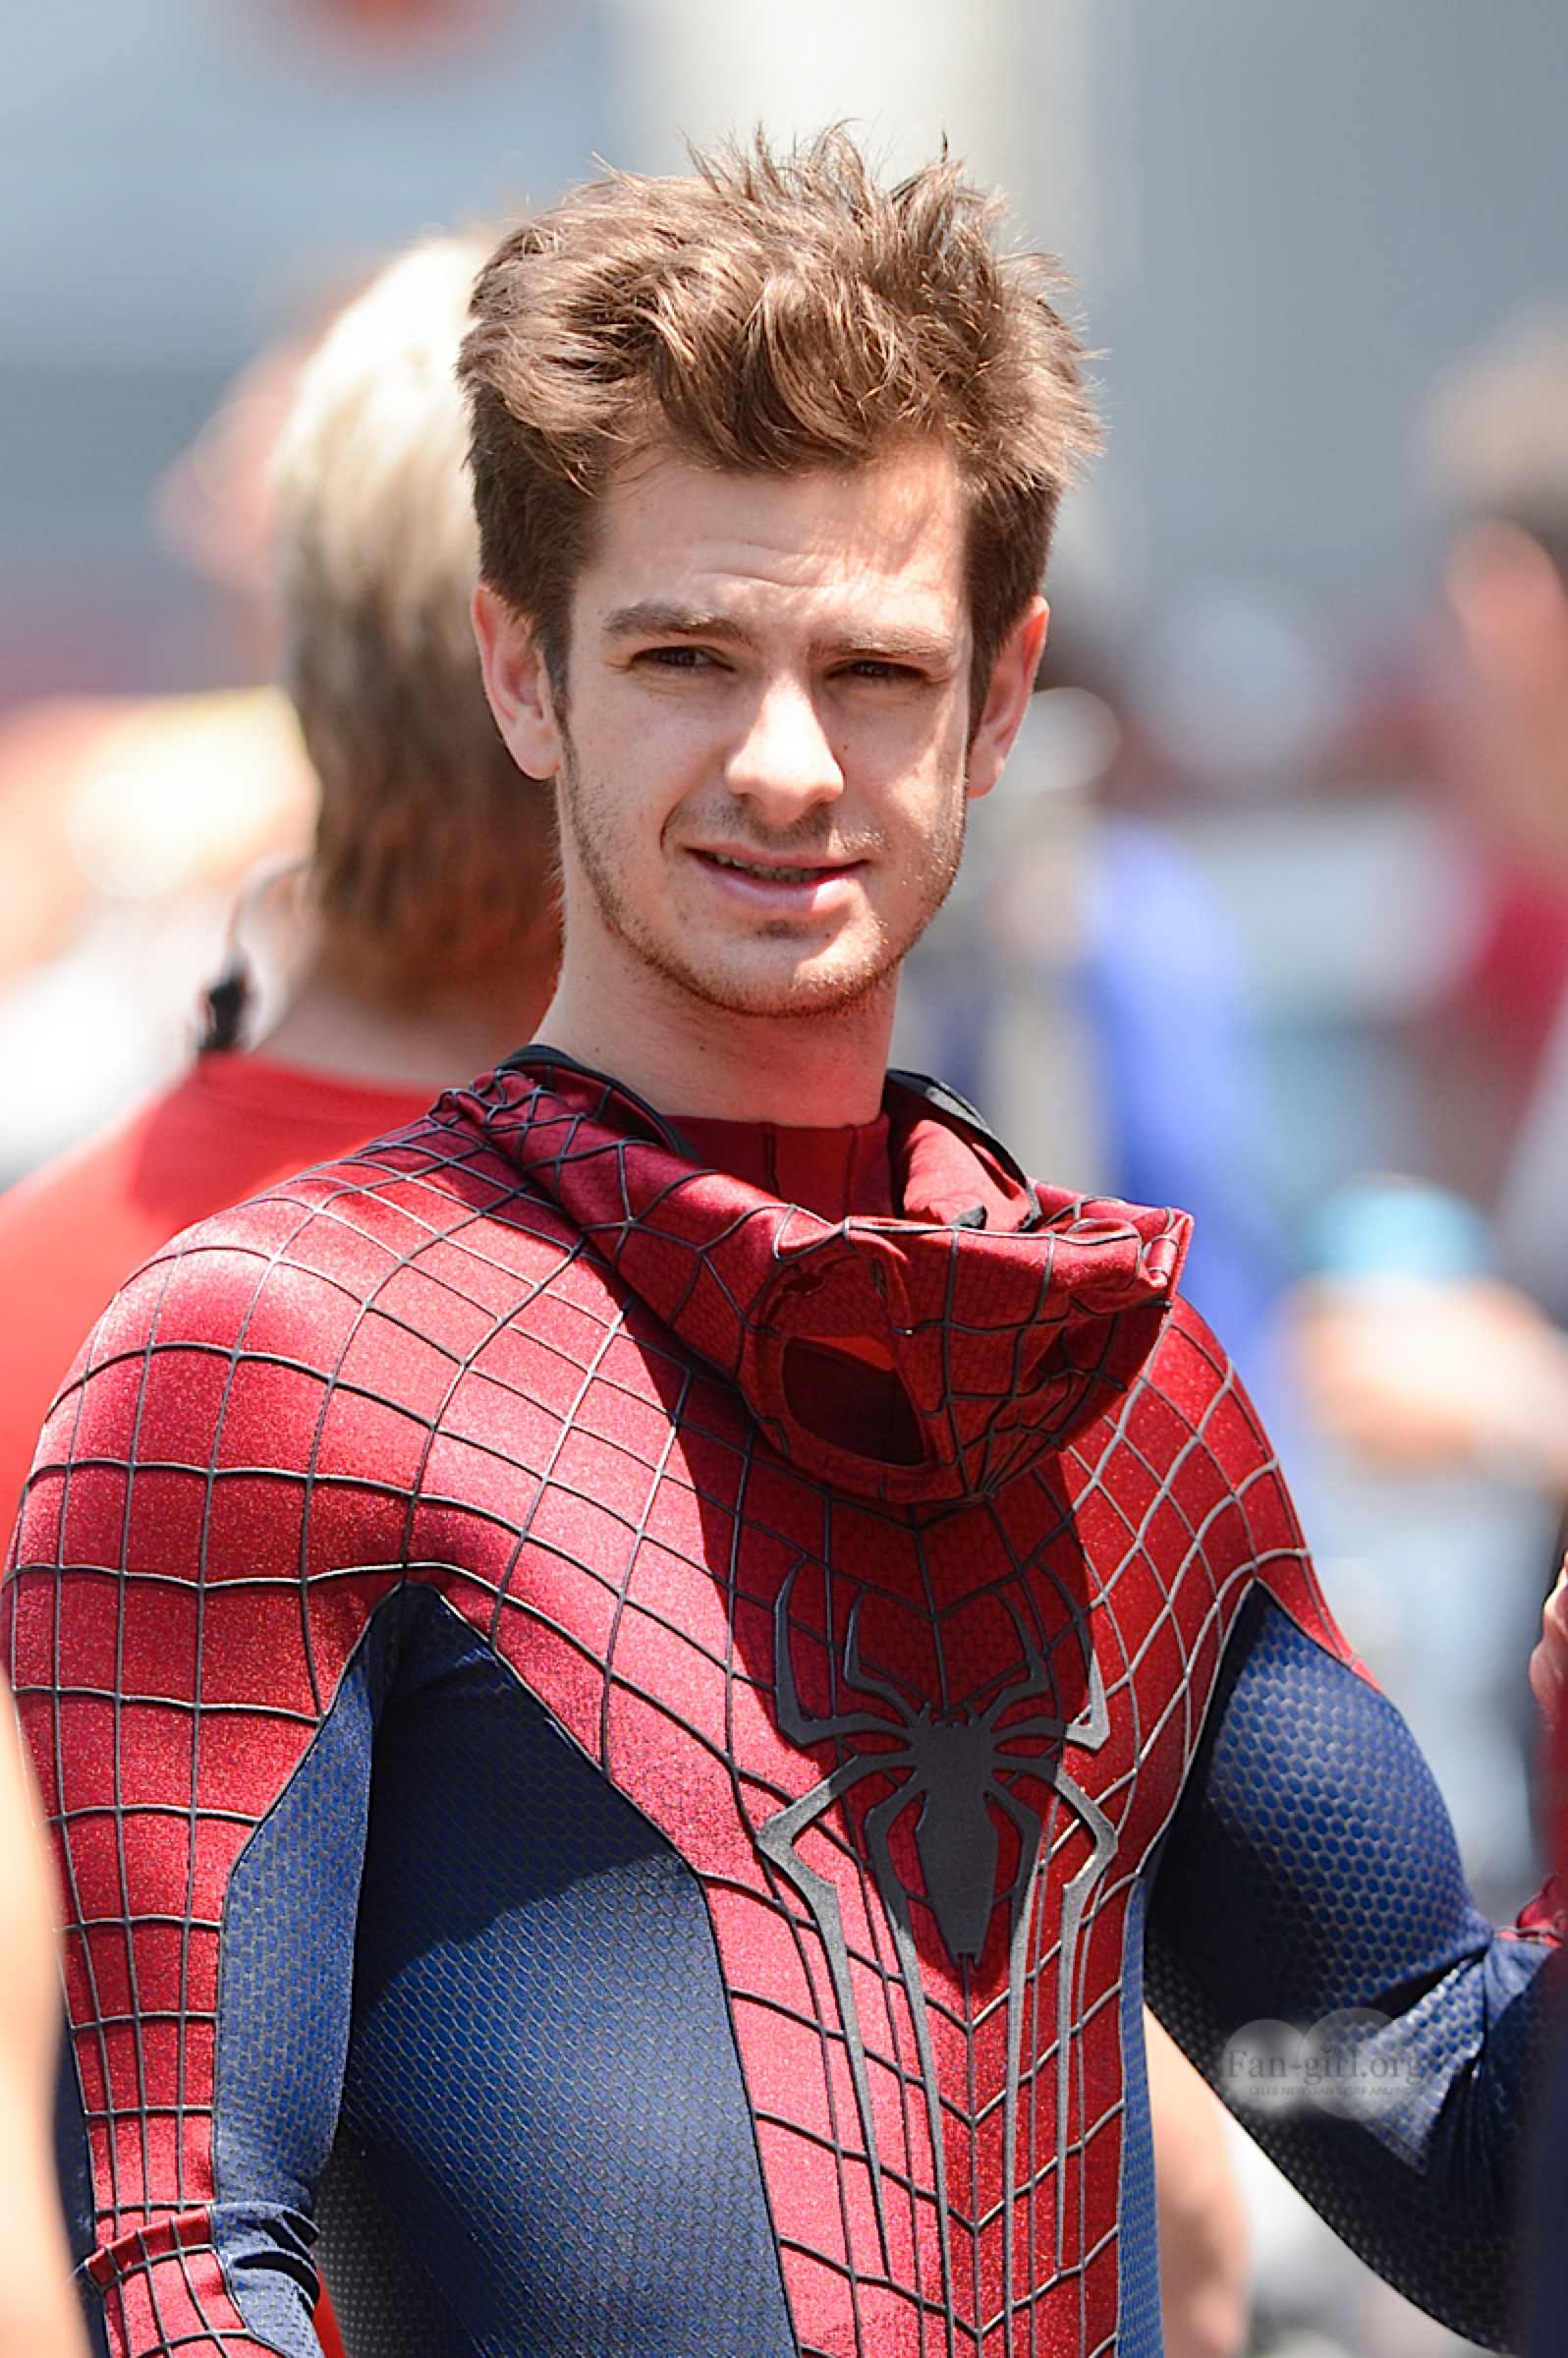 andrew garfield the amazing spiderman 27 Things You Didn't Know About The Spider-Man Films